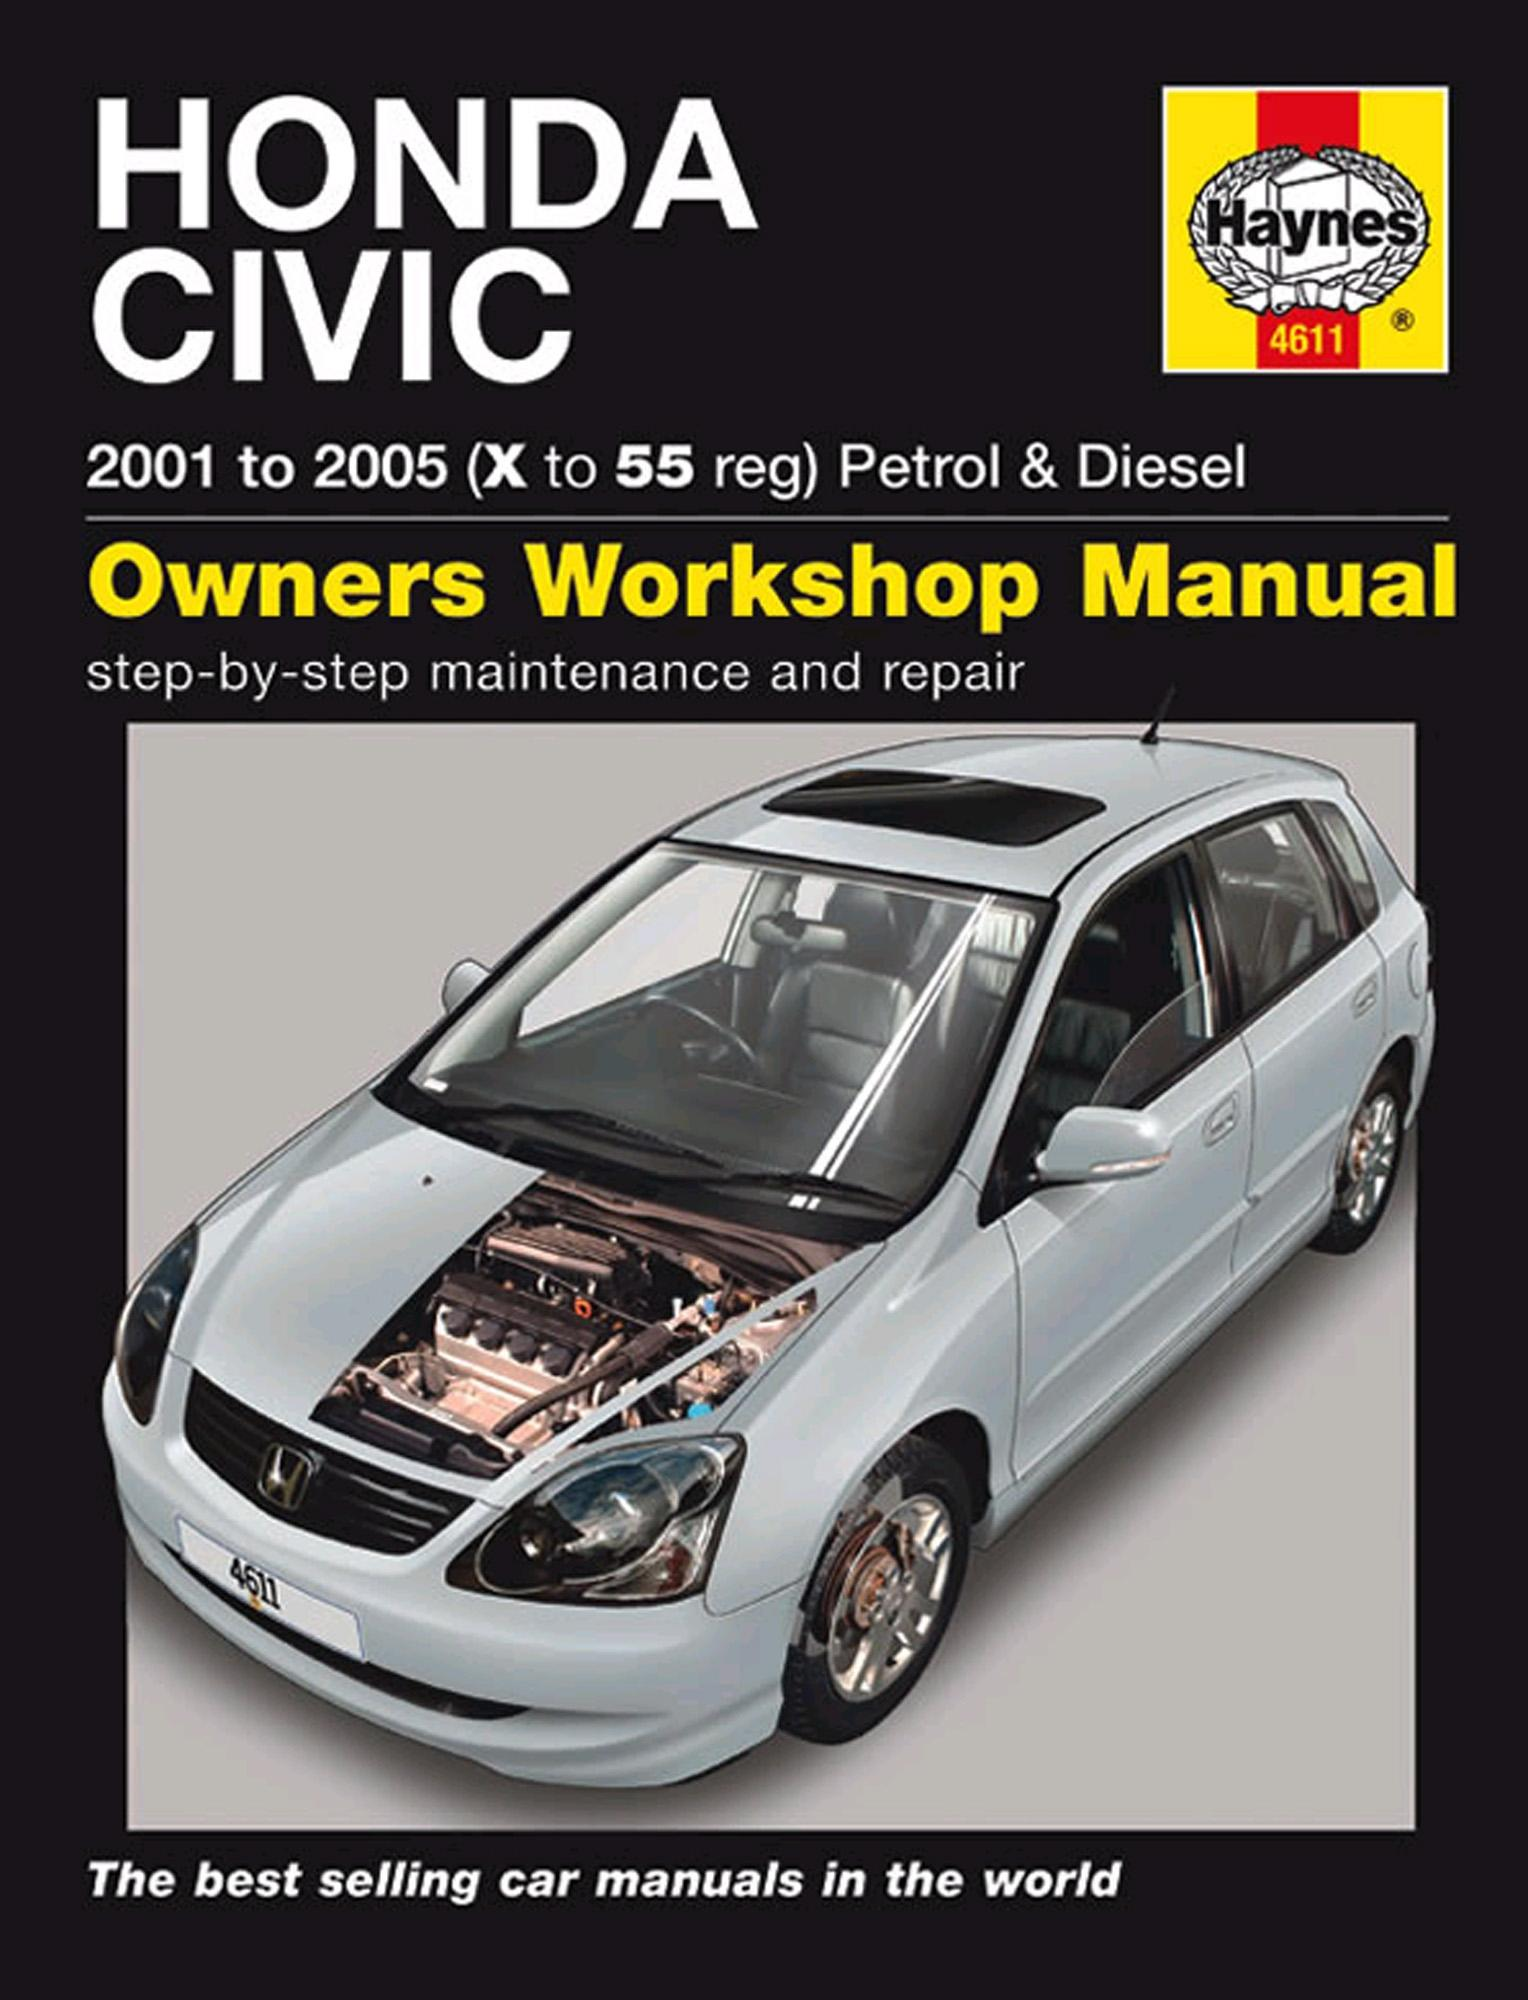 Haynes Owners Workshop Manual Honda Civic 2001-2005 Petrol Diesel  Maintenance